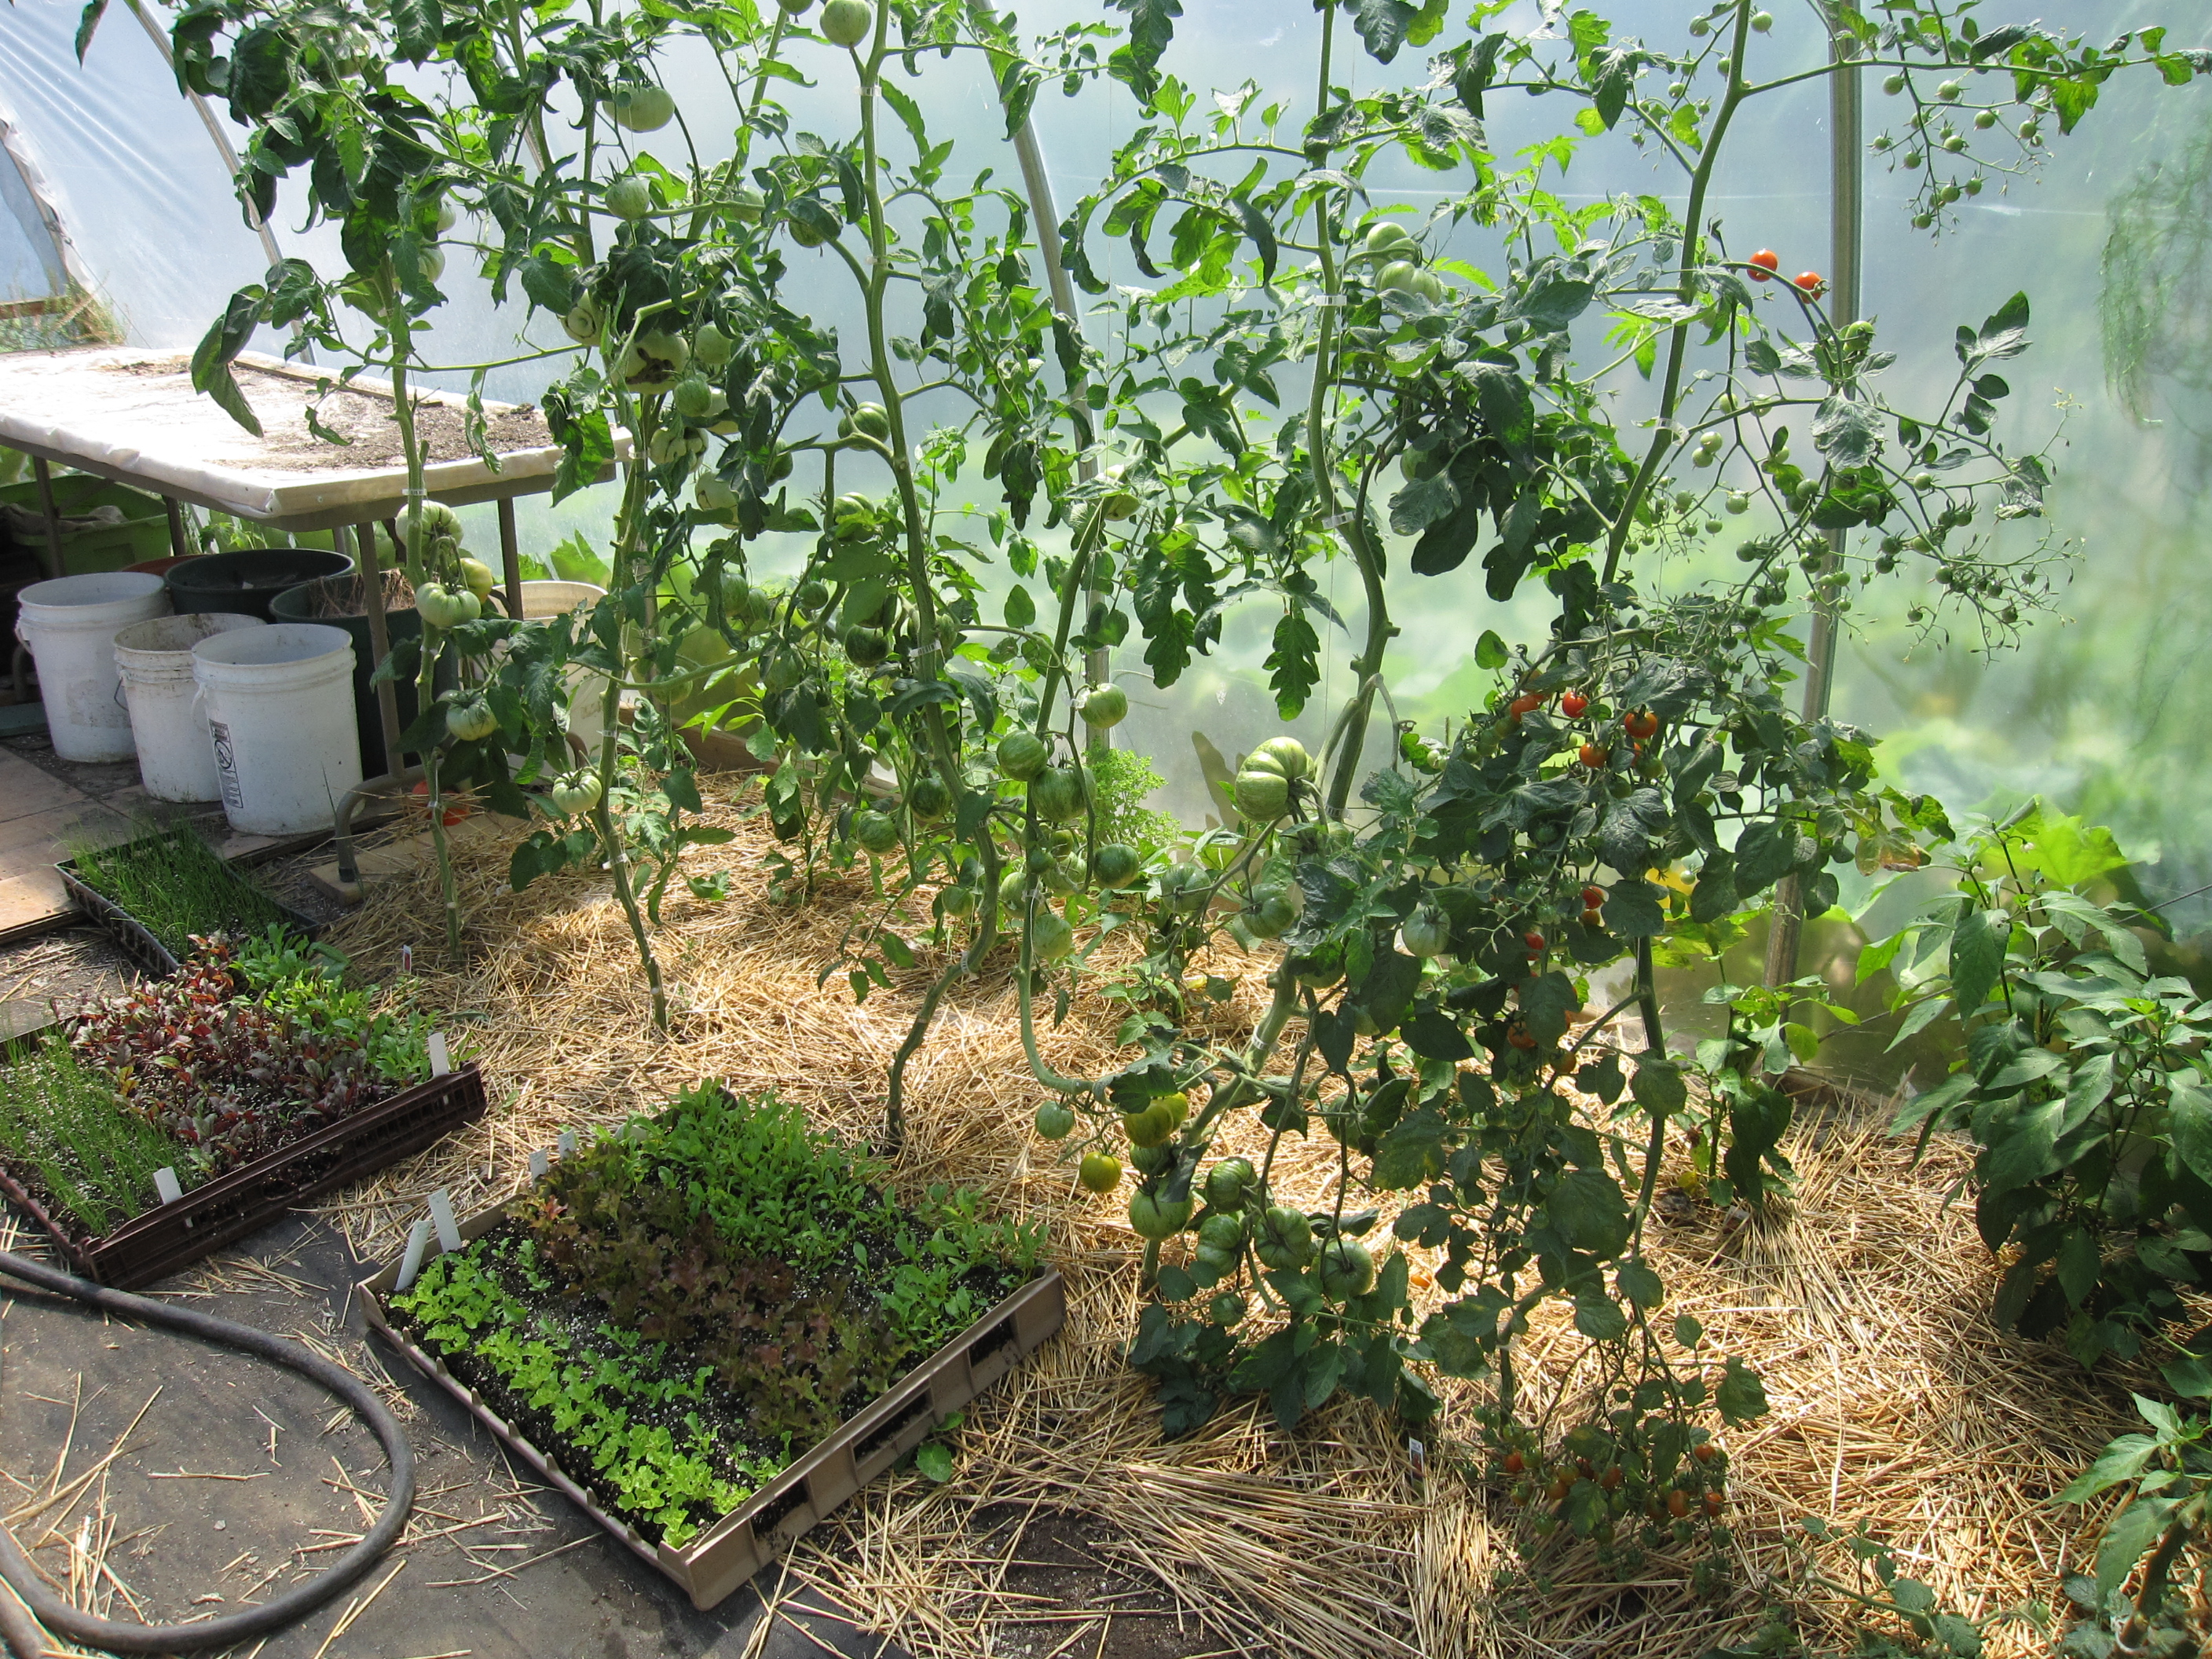 Tomatoes in the hoop house are slow to ripen due to a cool summer